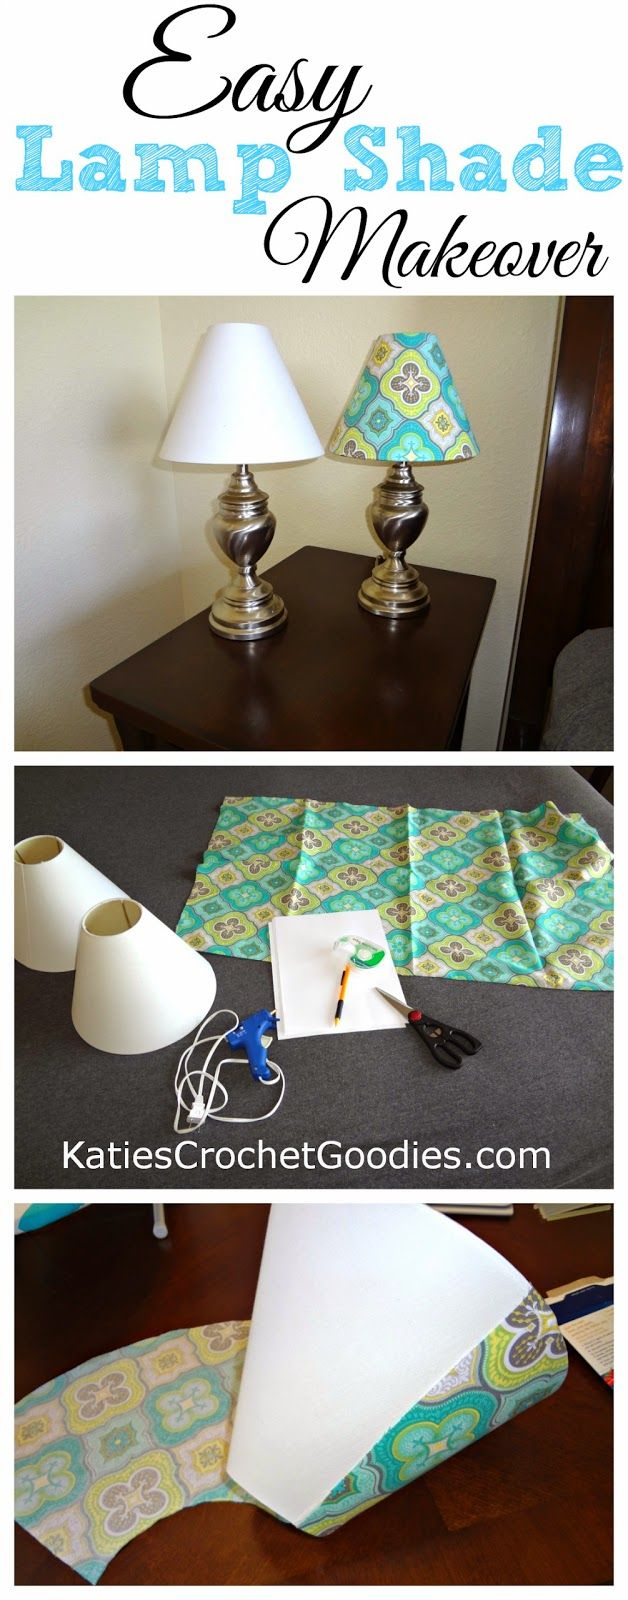 This post may or may not include affiliate links. Click here fordisclosure policy. I took my plain white lamp shades today and recovered them to make them gorgeous! I am so very excited to share this post with you. I will show you before & after pictures along with step by step directions on how …